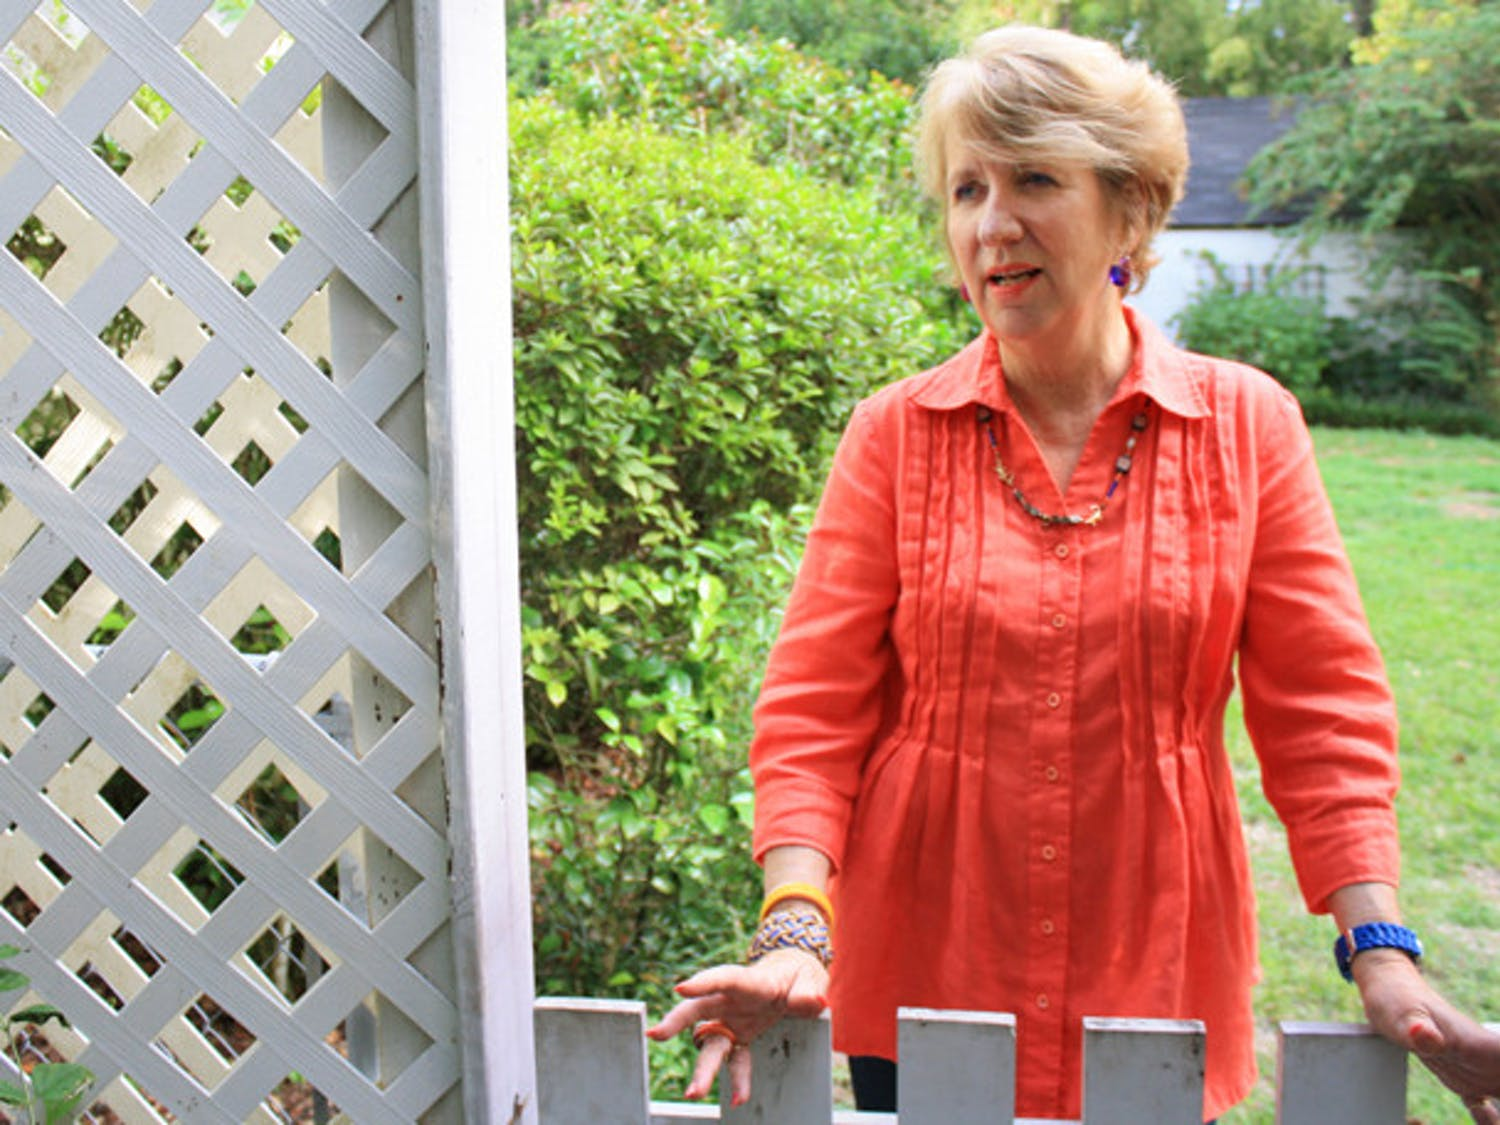 Donna Lutz, 66, stands outside her home Friday. She is running for the Gainesville City Commission at-large 1 seat.